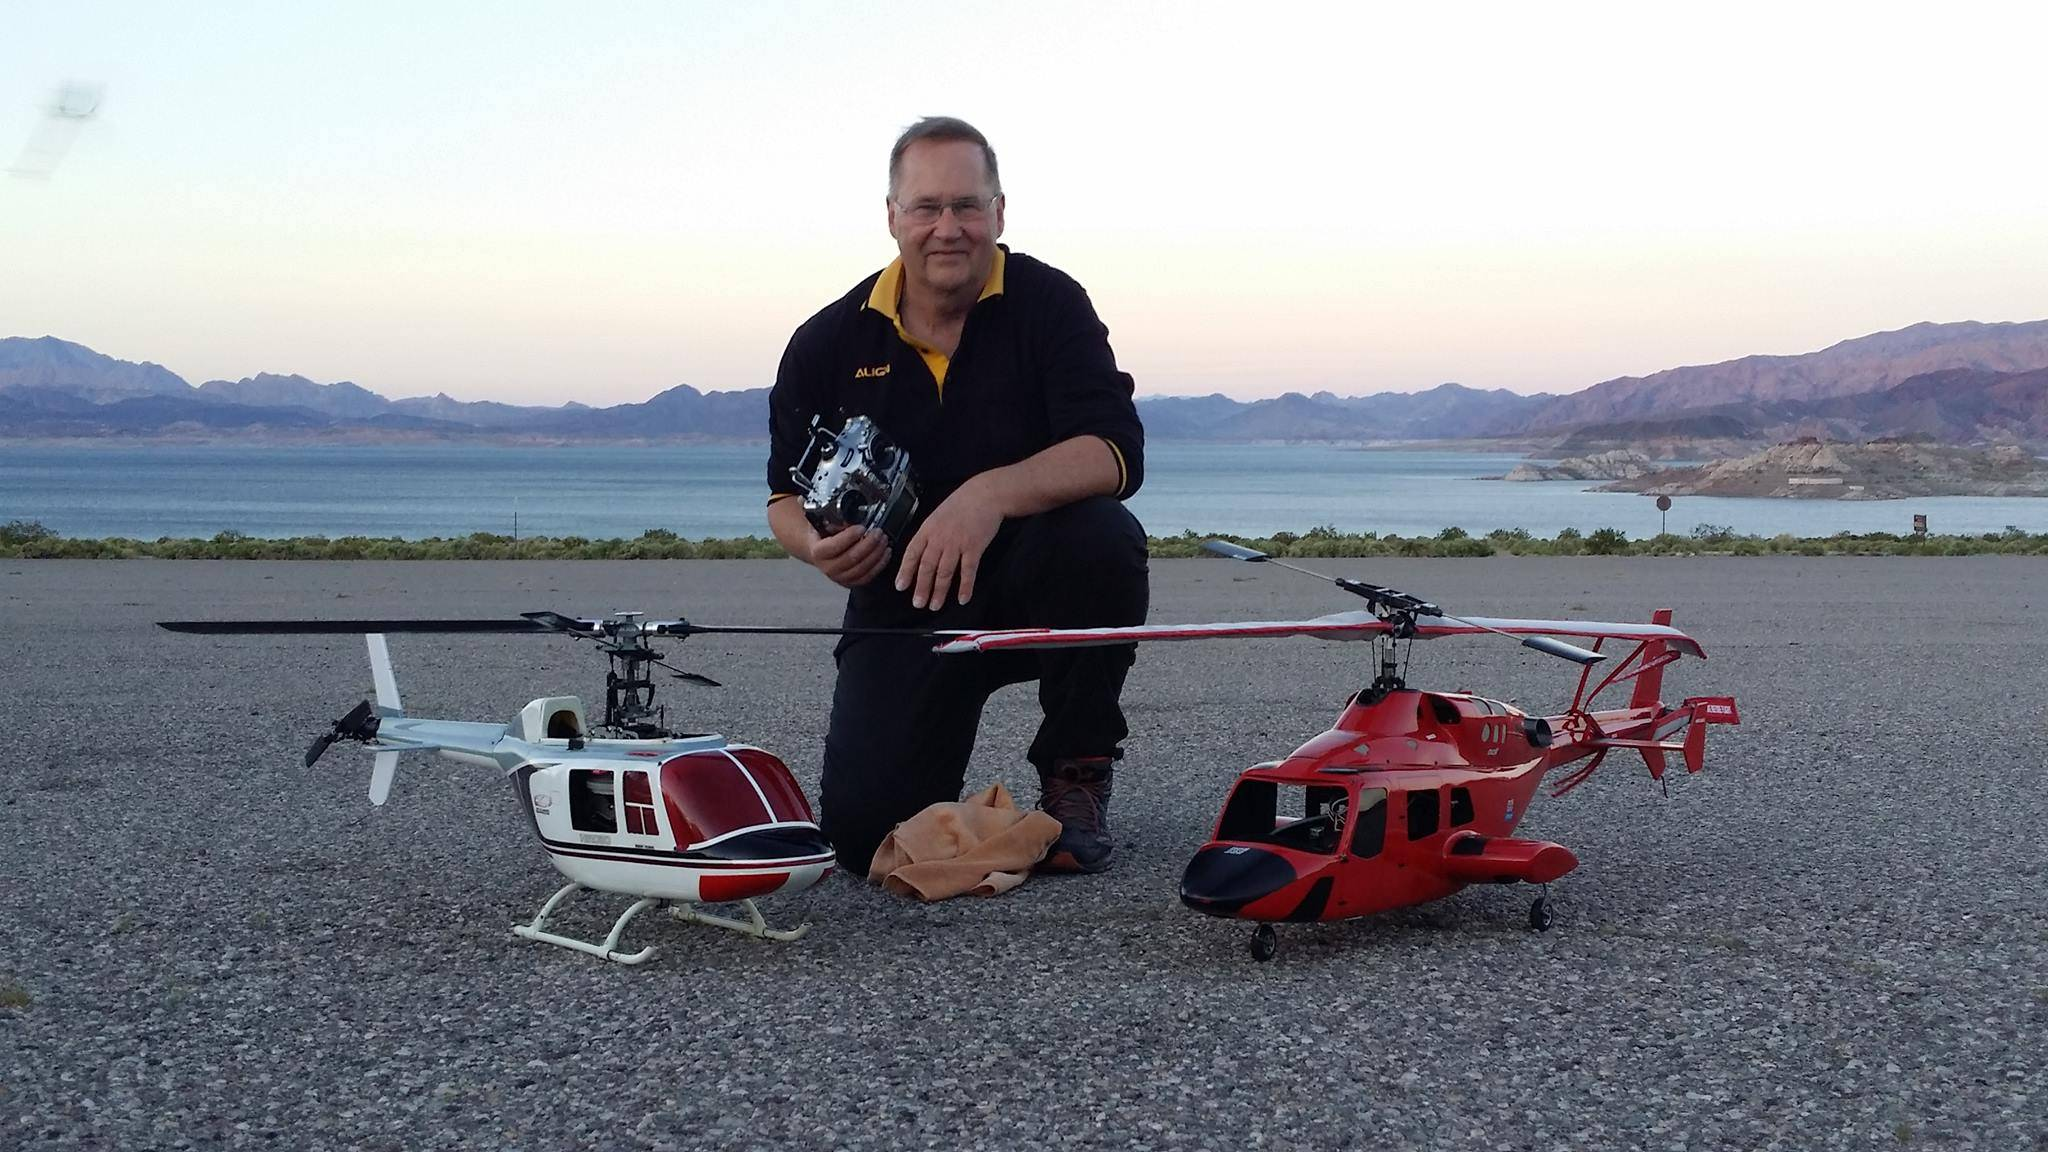 Barry with the GMP heli's previously owned by Robert Gorham